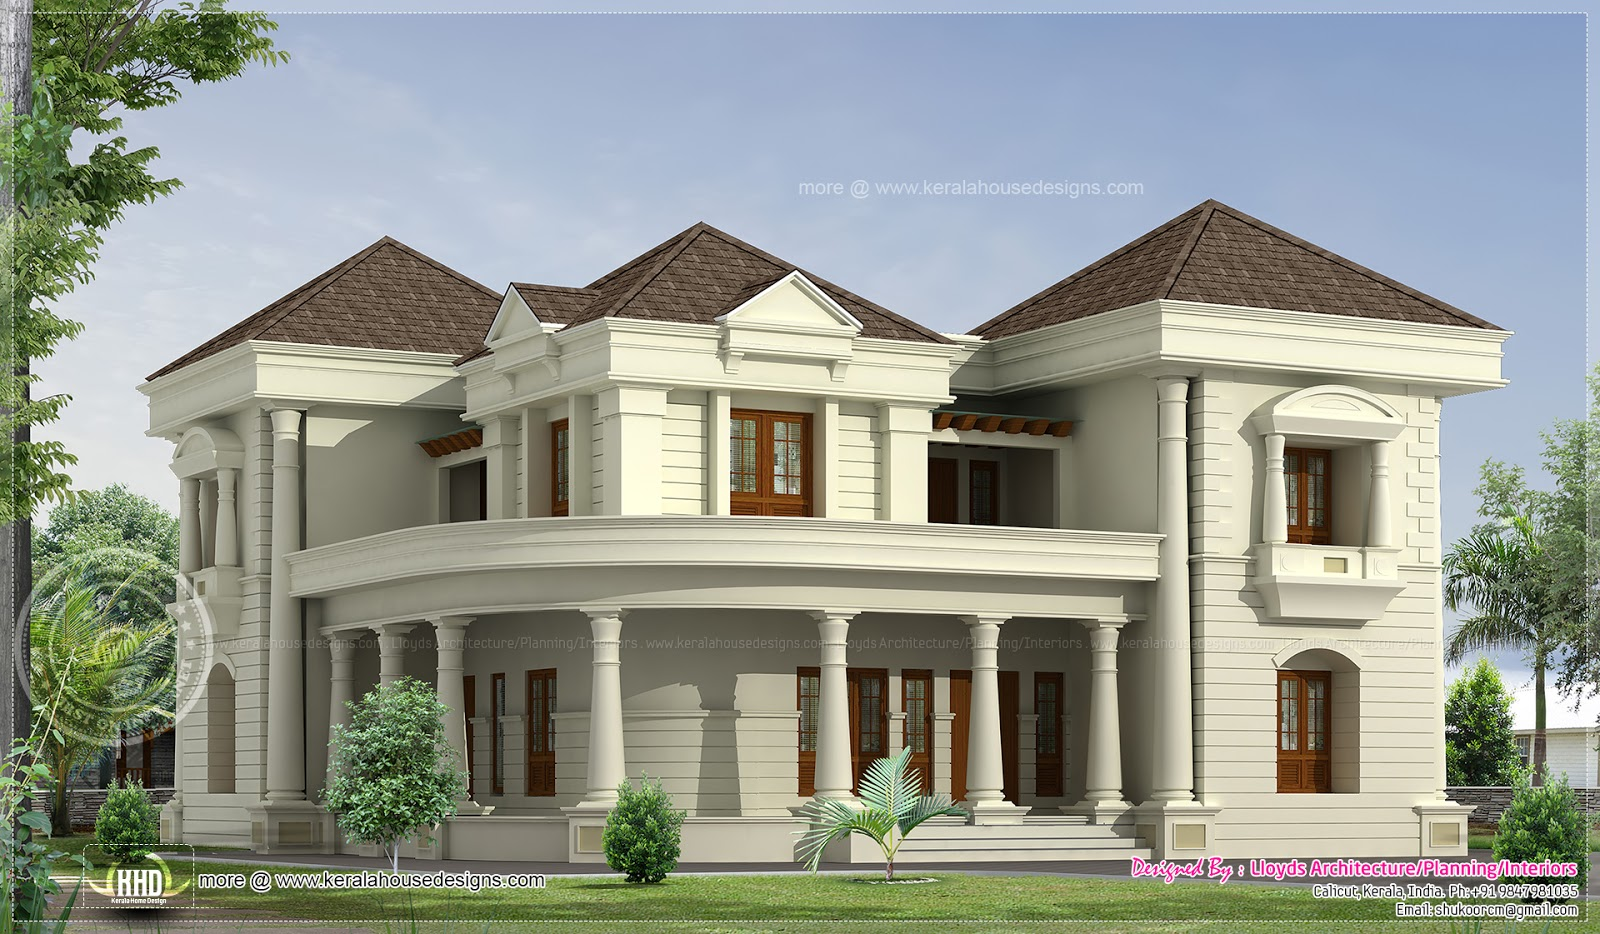 Impressive 3-Bedroom Bungalow House Design 1600 x 934 · 384 kB · jpeg